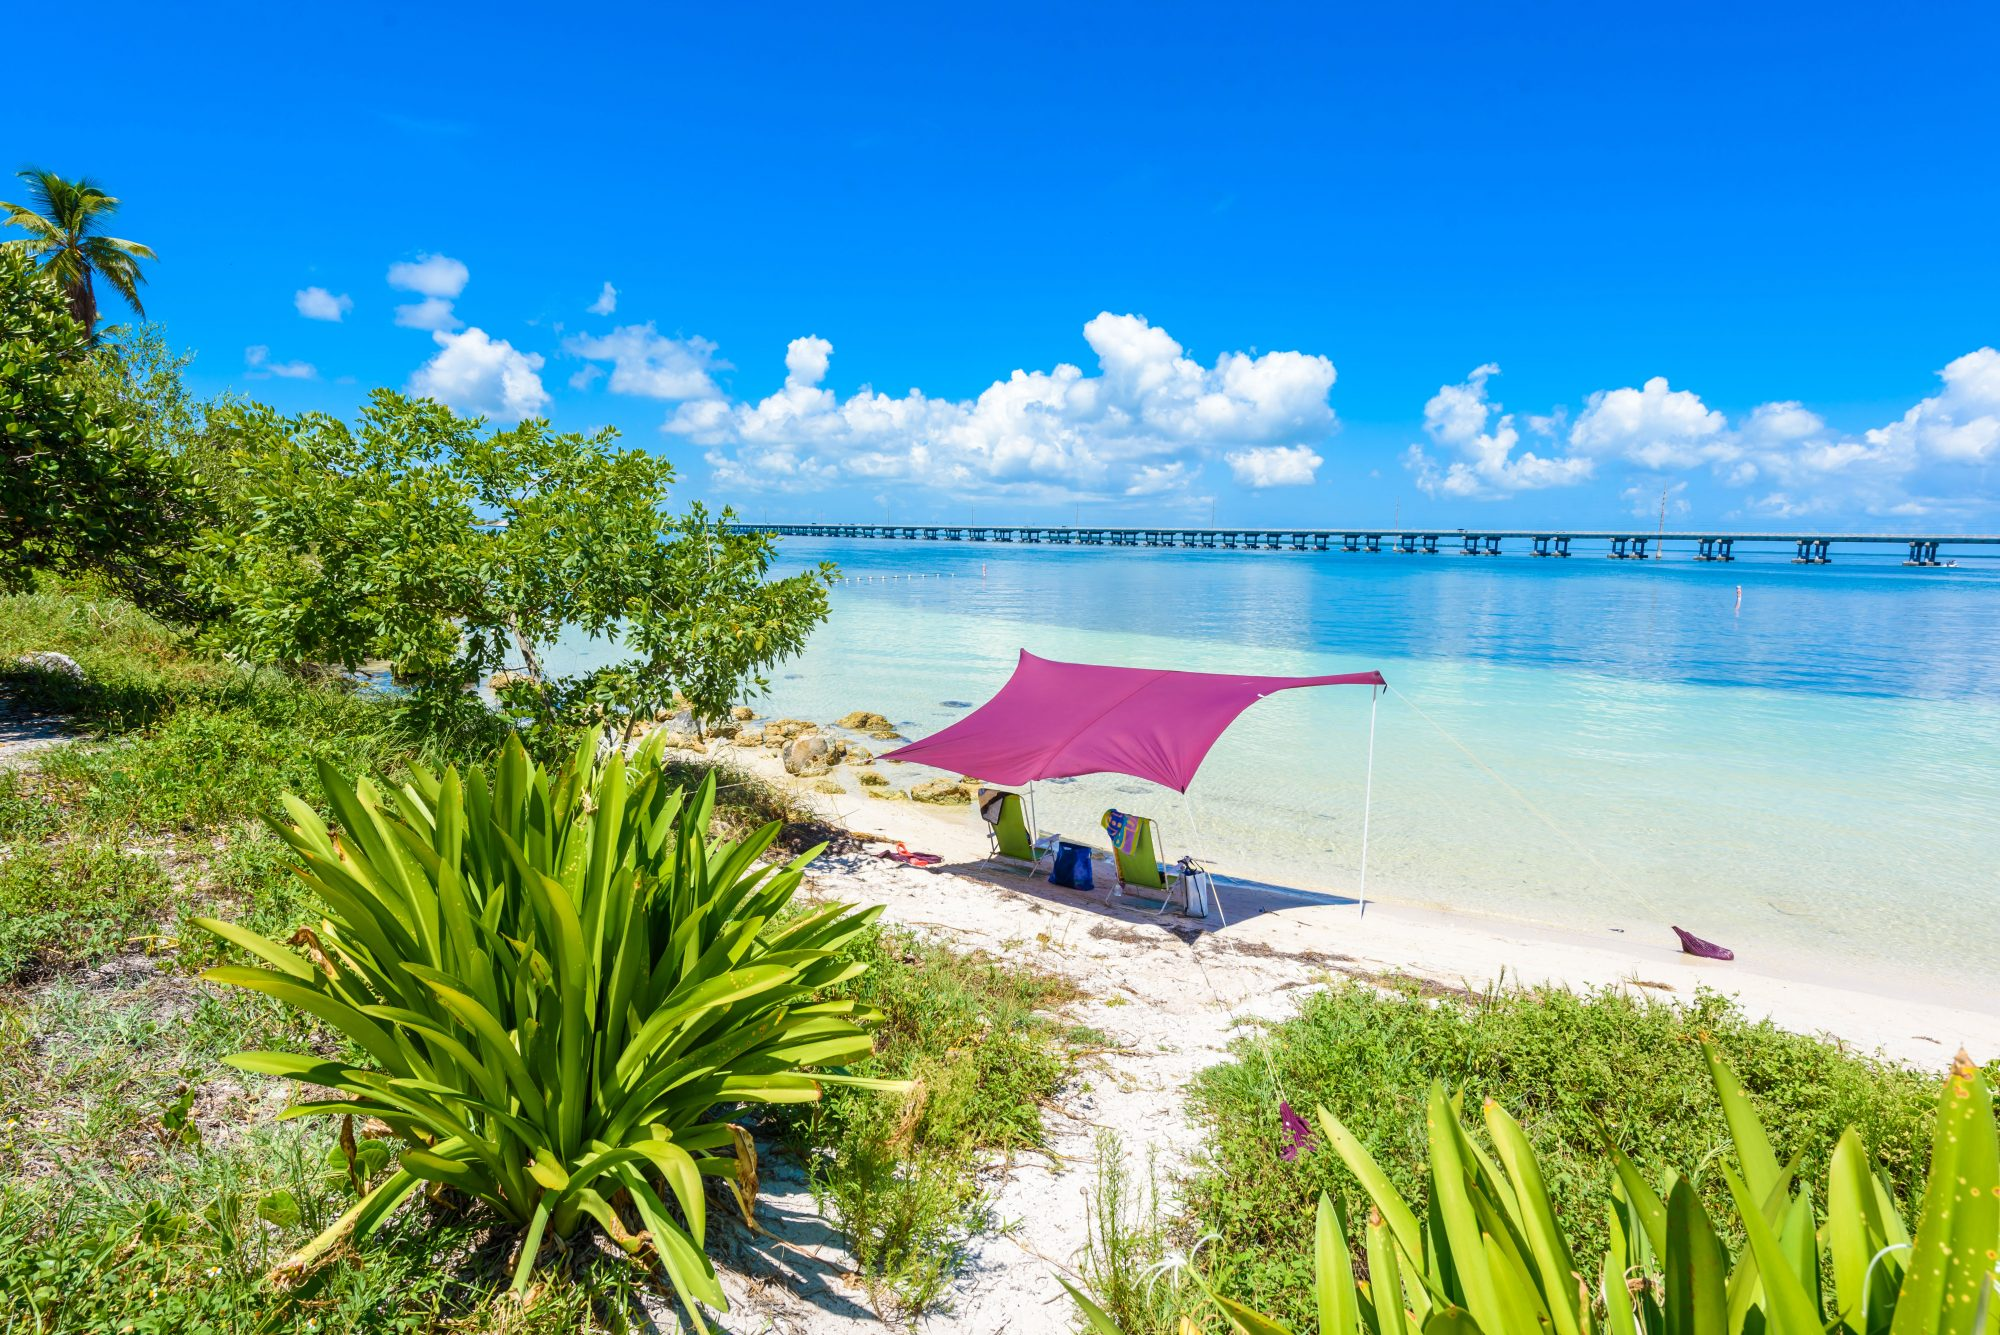 It's easy to see why Bahia Honda State Park's campsites are some of the most sought-after in the Florida parks system—they're mere feet away from some of the best snorkeling spots in the Keys. The shallow water makes swimming here easy for beginners, and sea life is abundant.